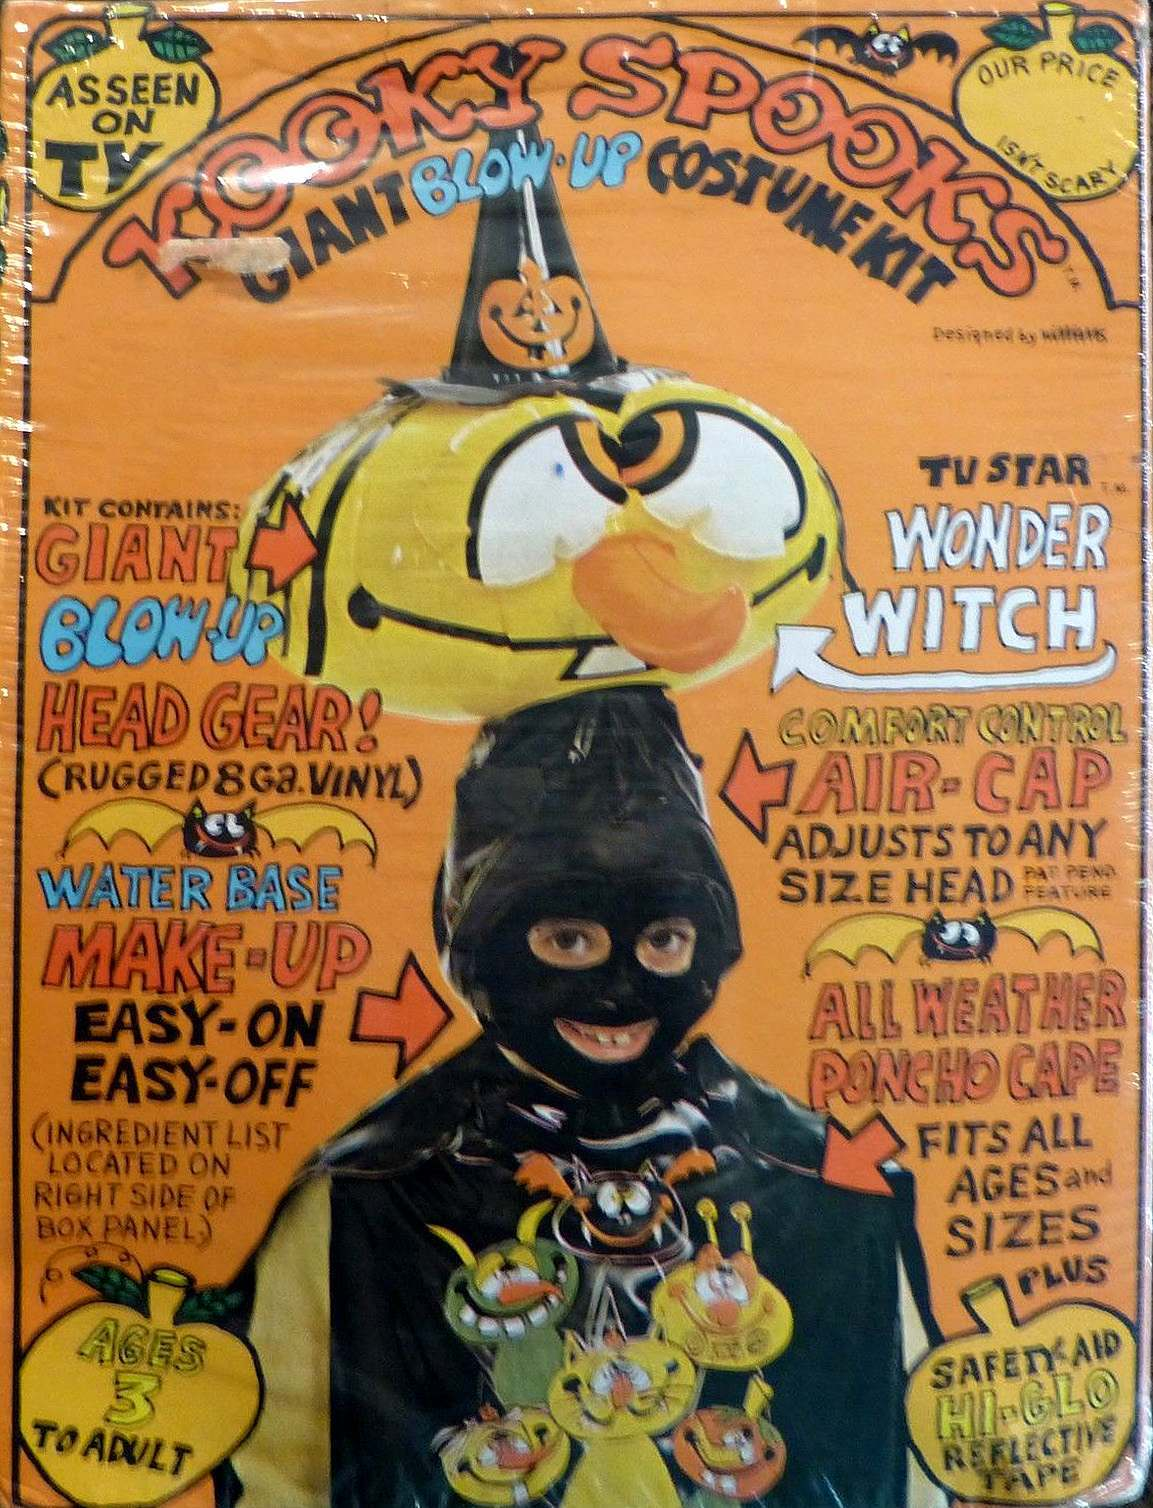 Bad Halloween Costumes of the 1970s and 80s Flashbak